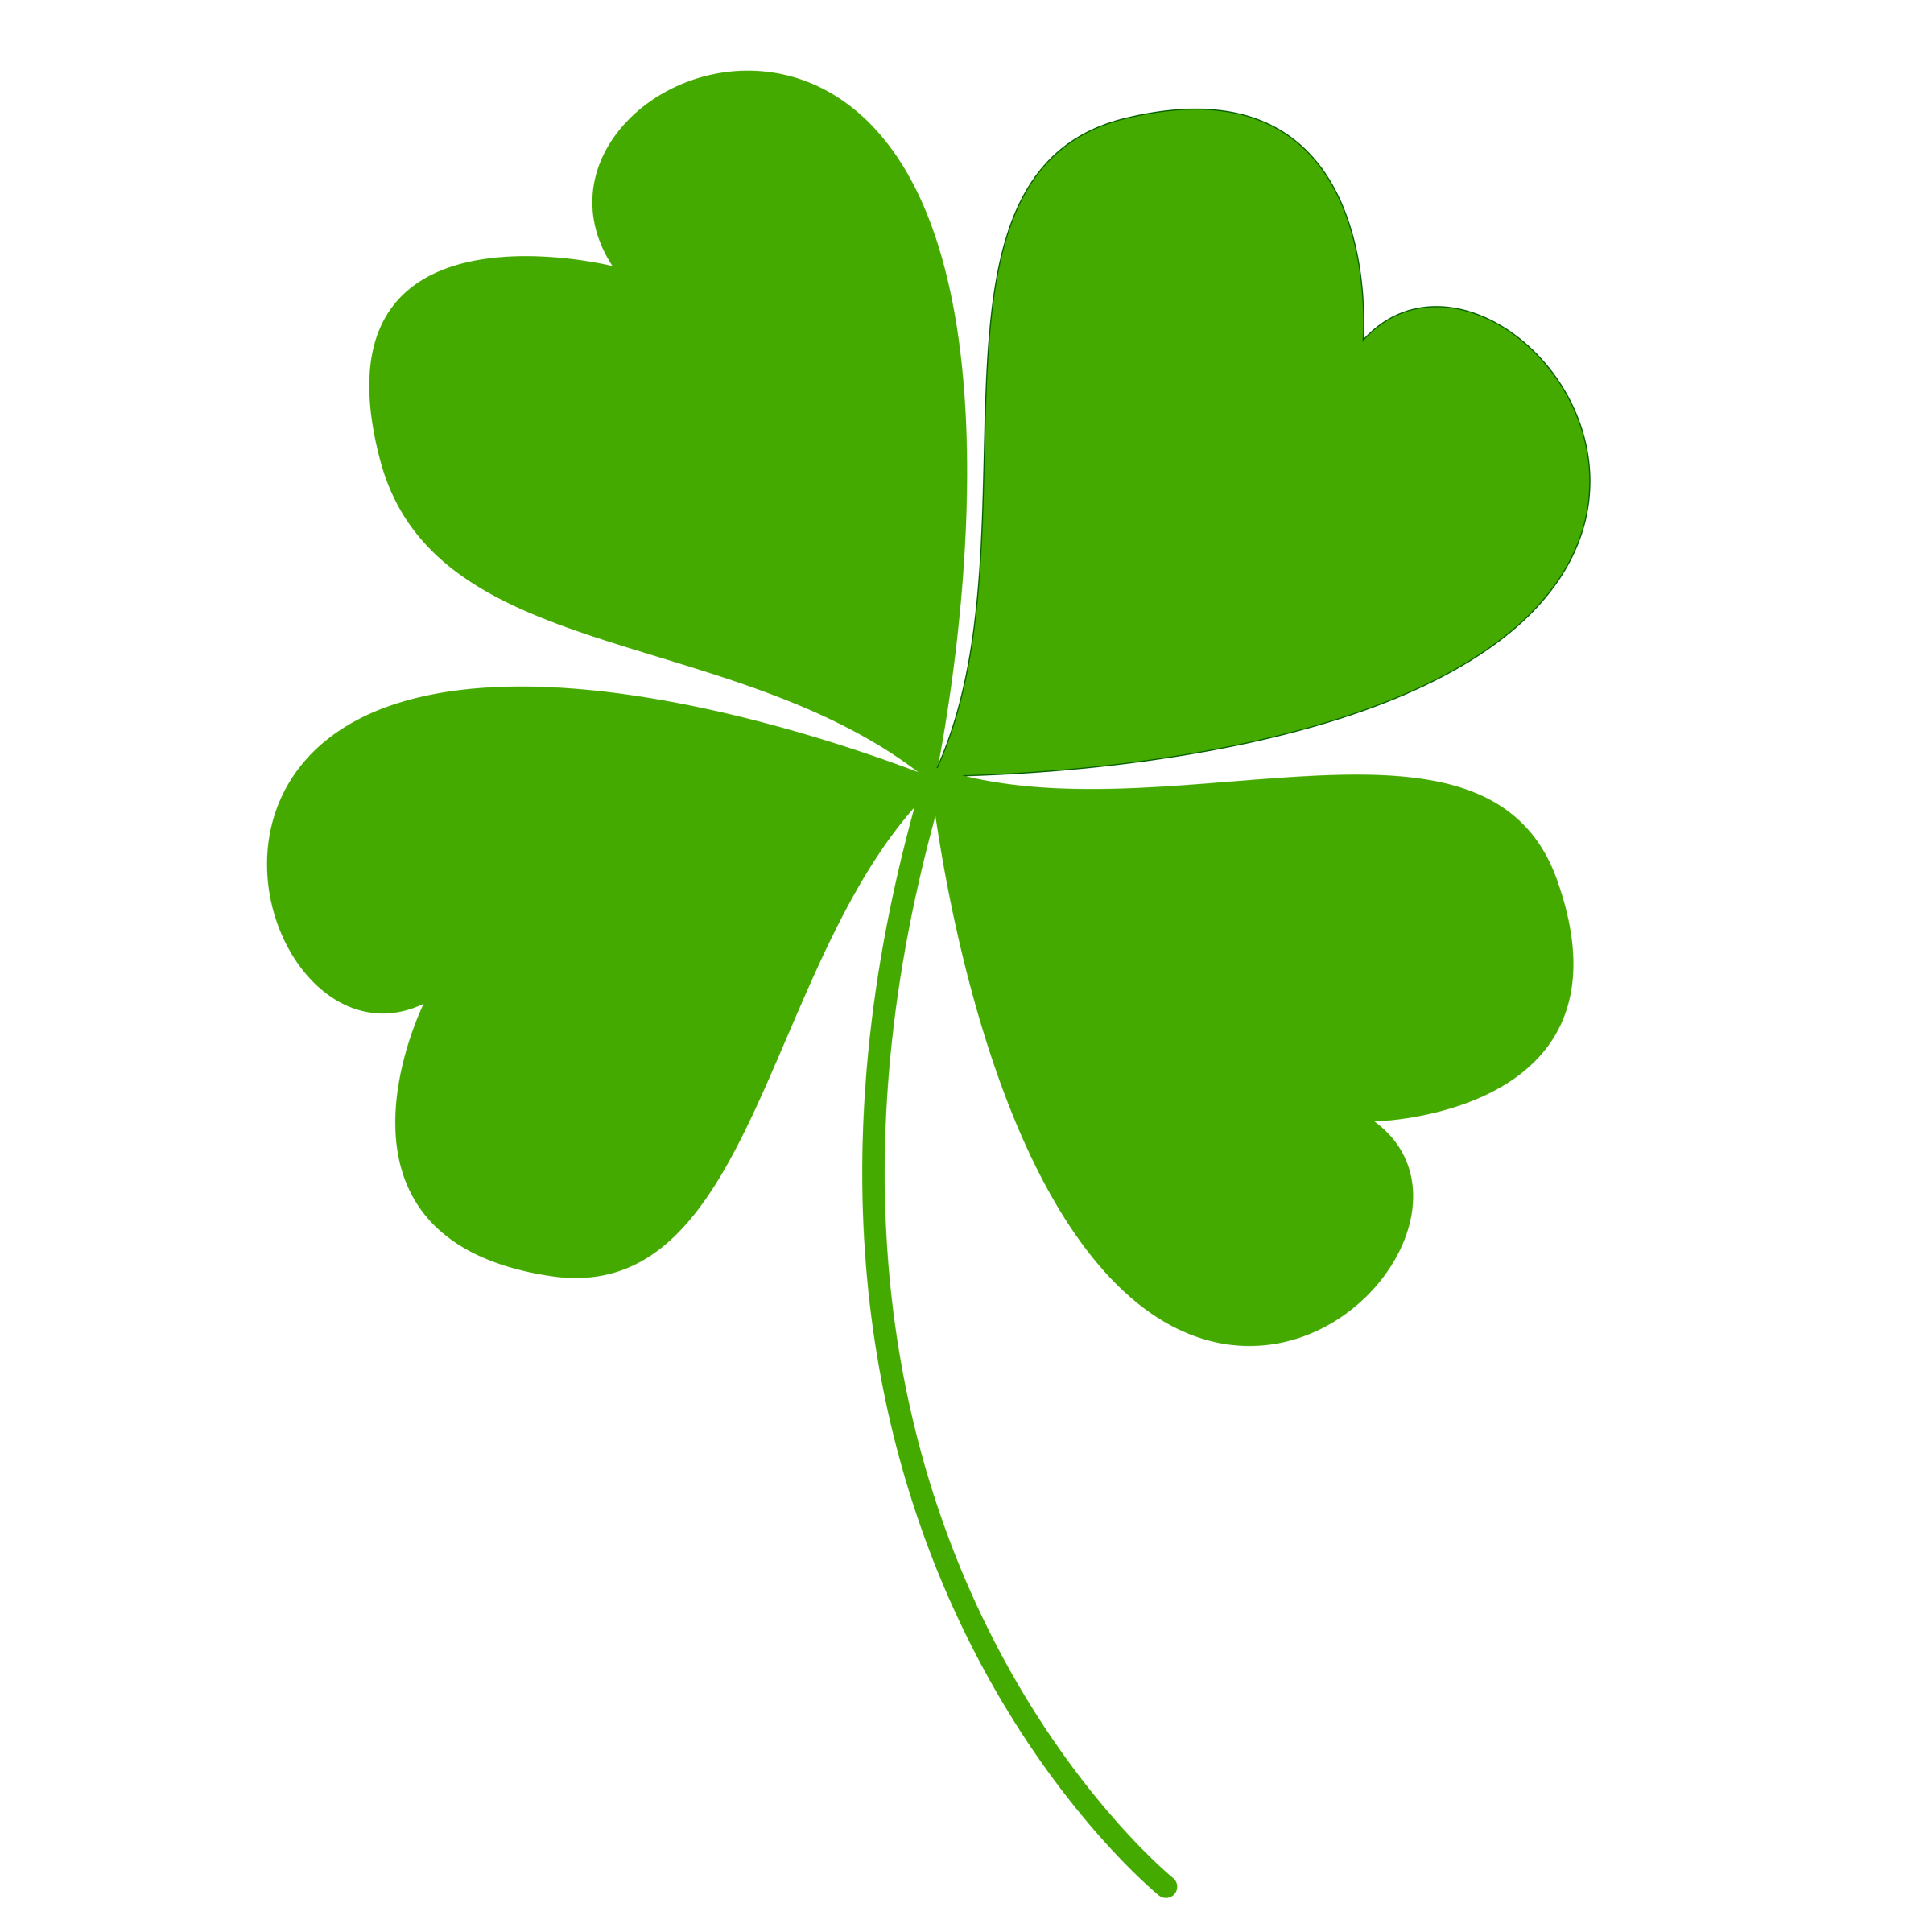 Download Clover High Quality Png Hq Png Image Freepngimg